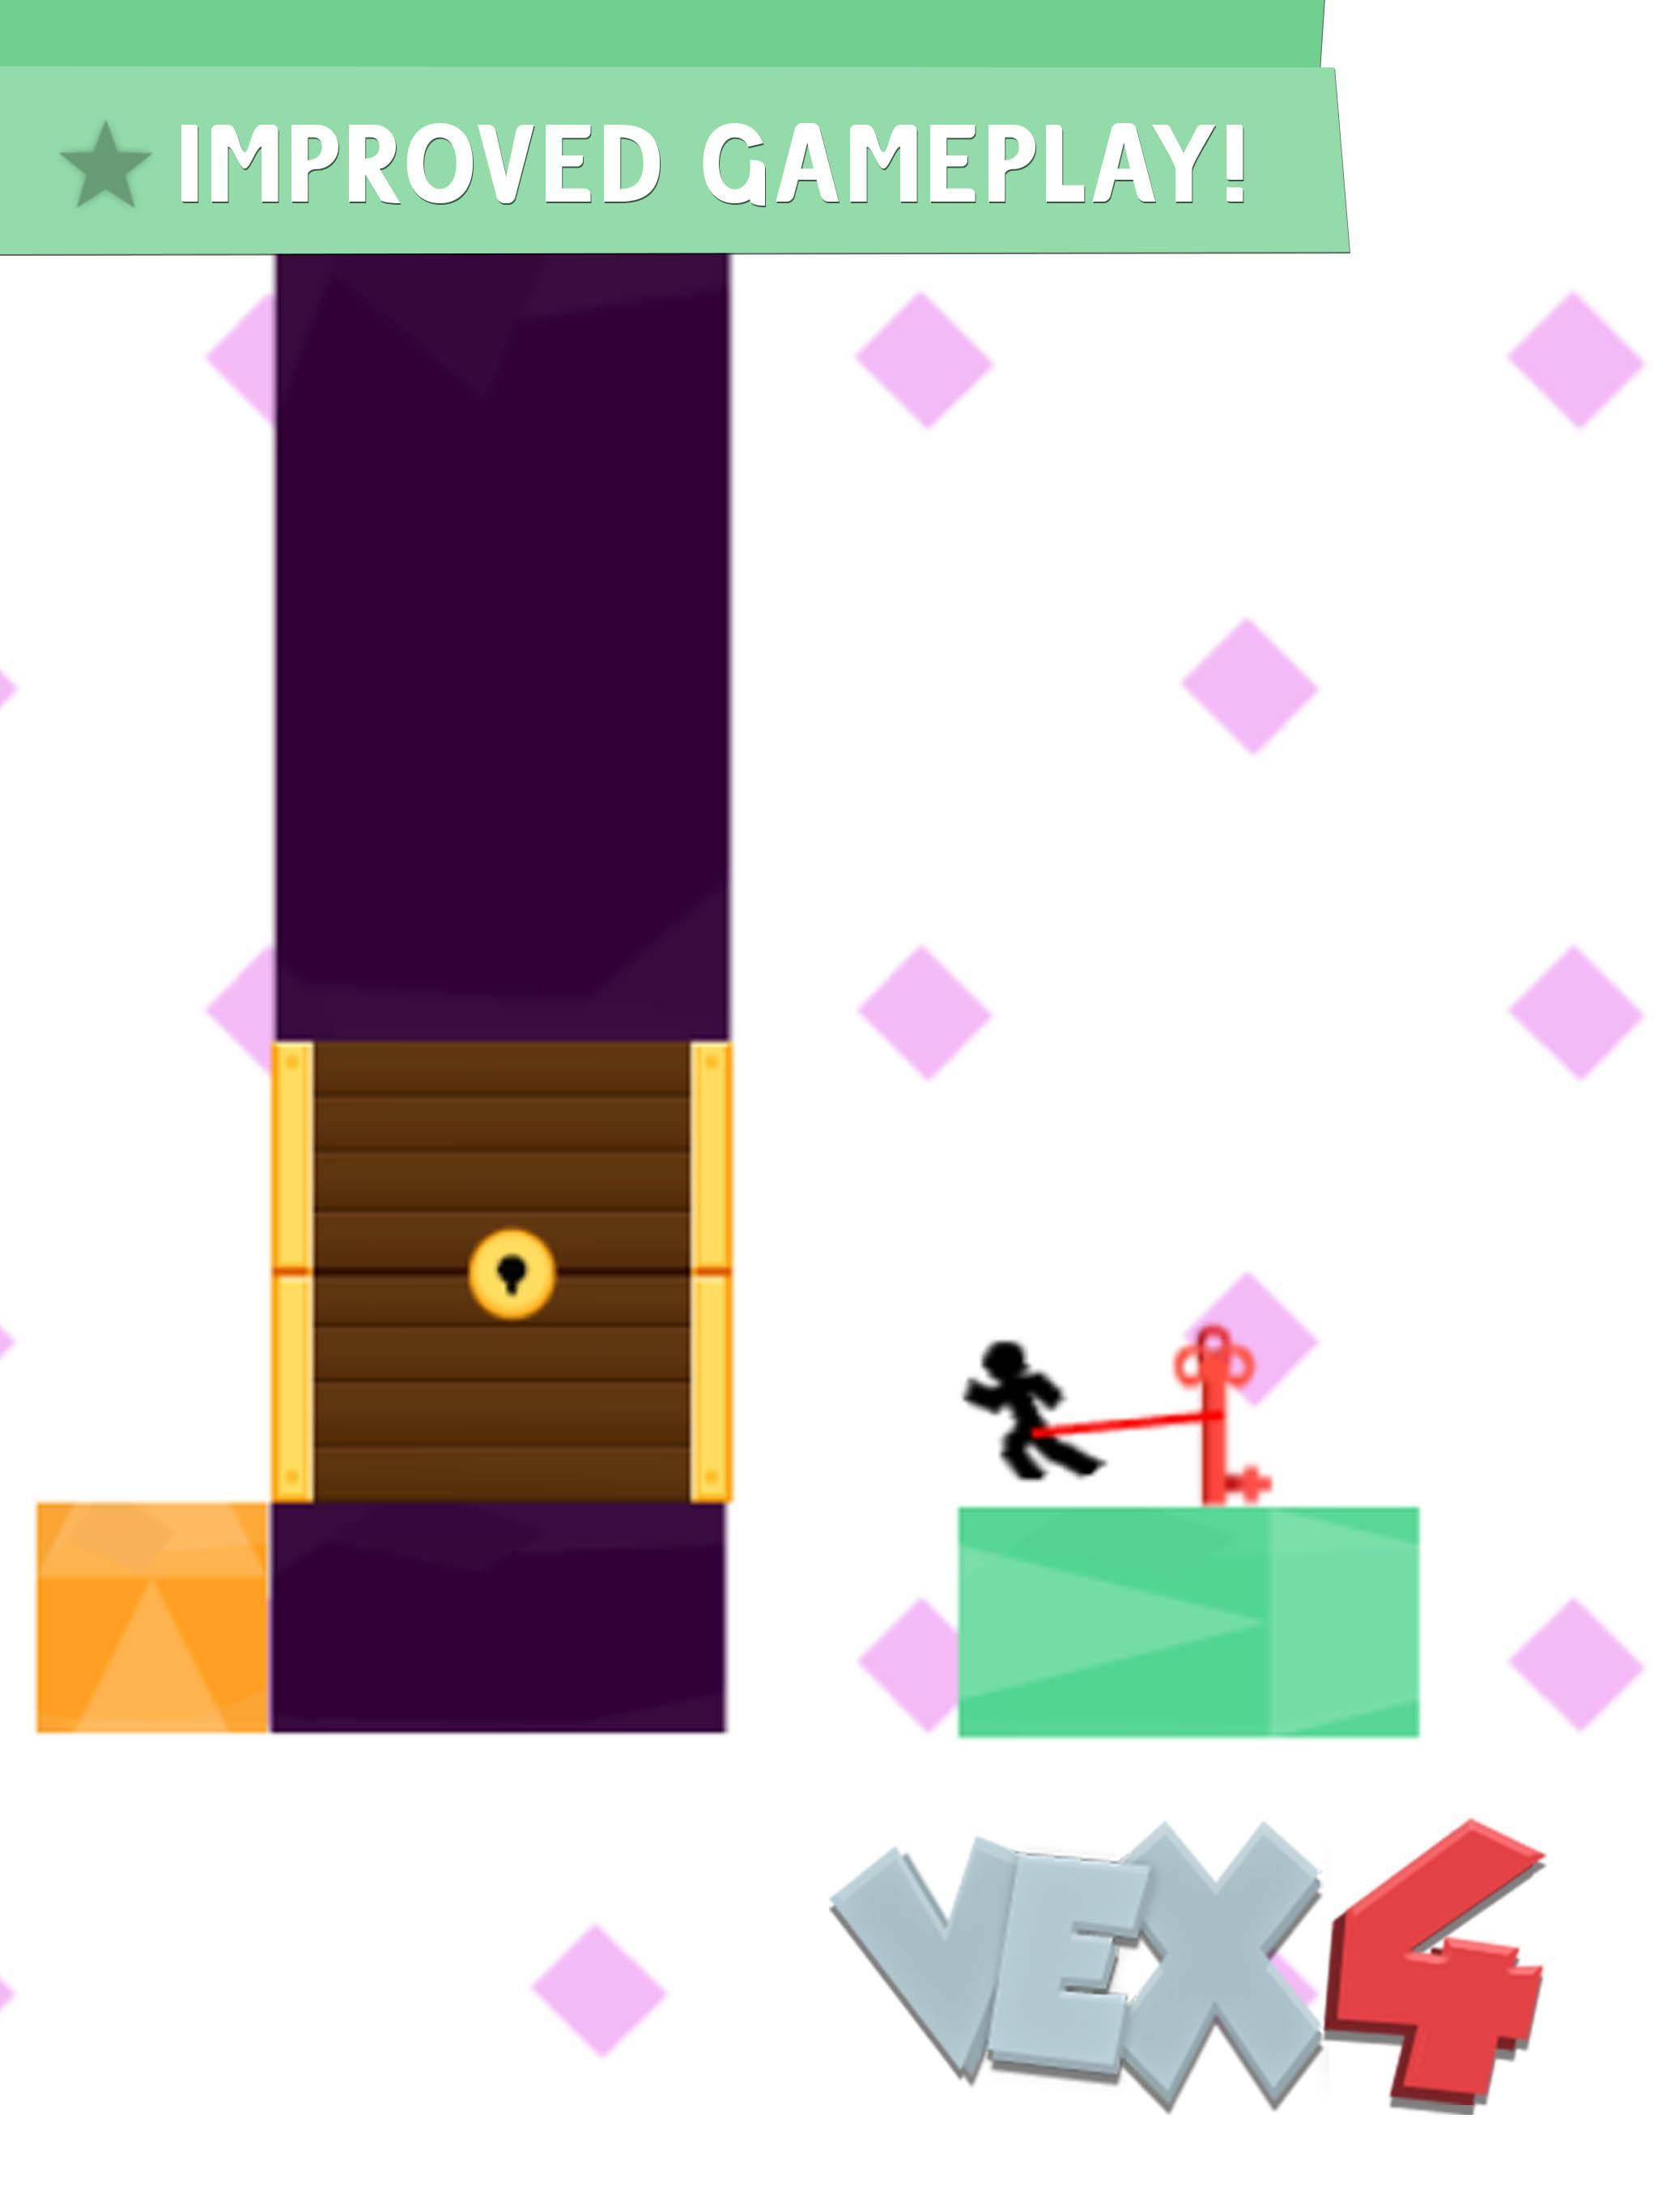 Vex 4 Free Addictive Games By Kizi For Android Apk Download